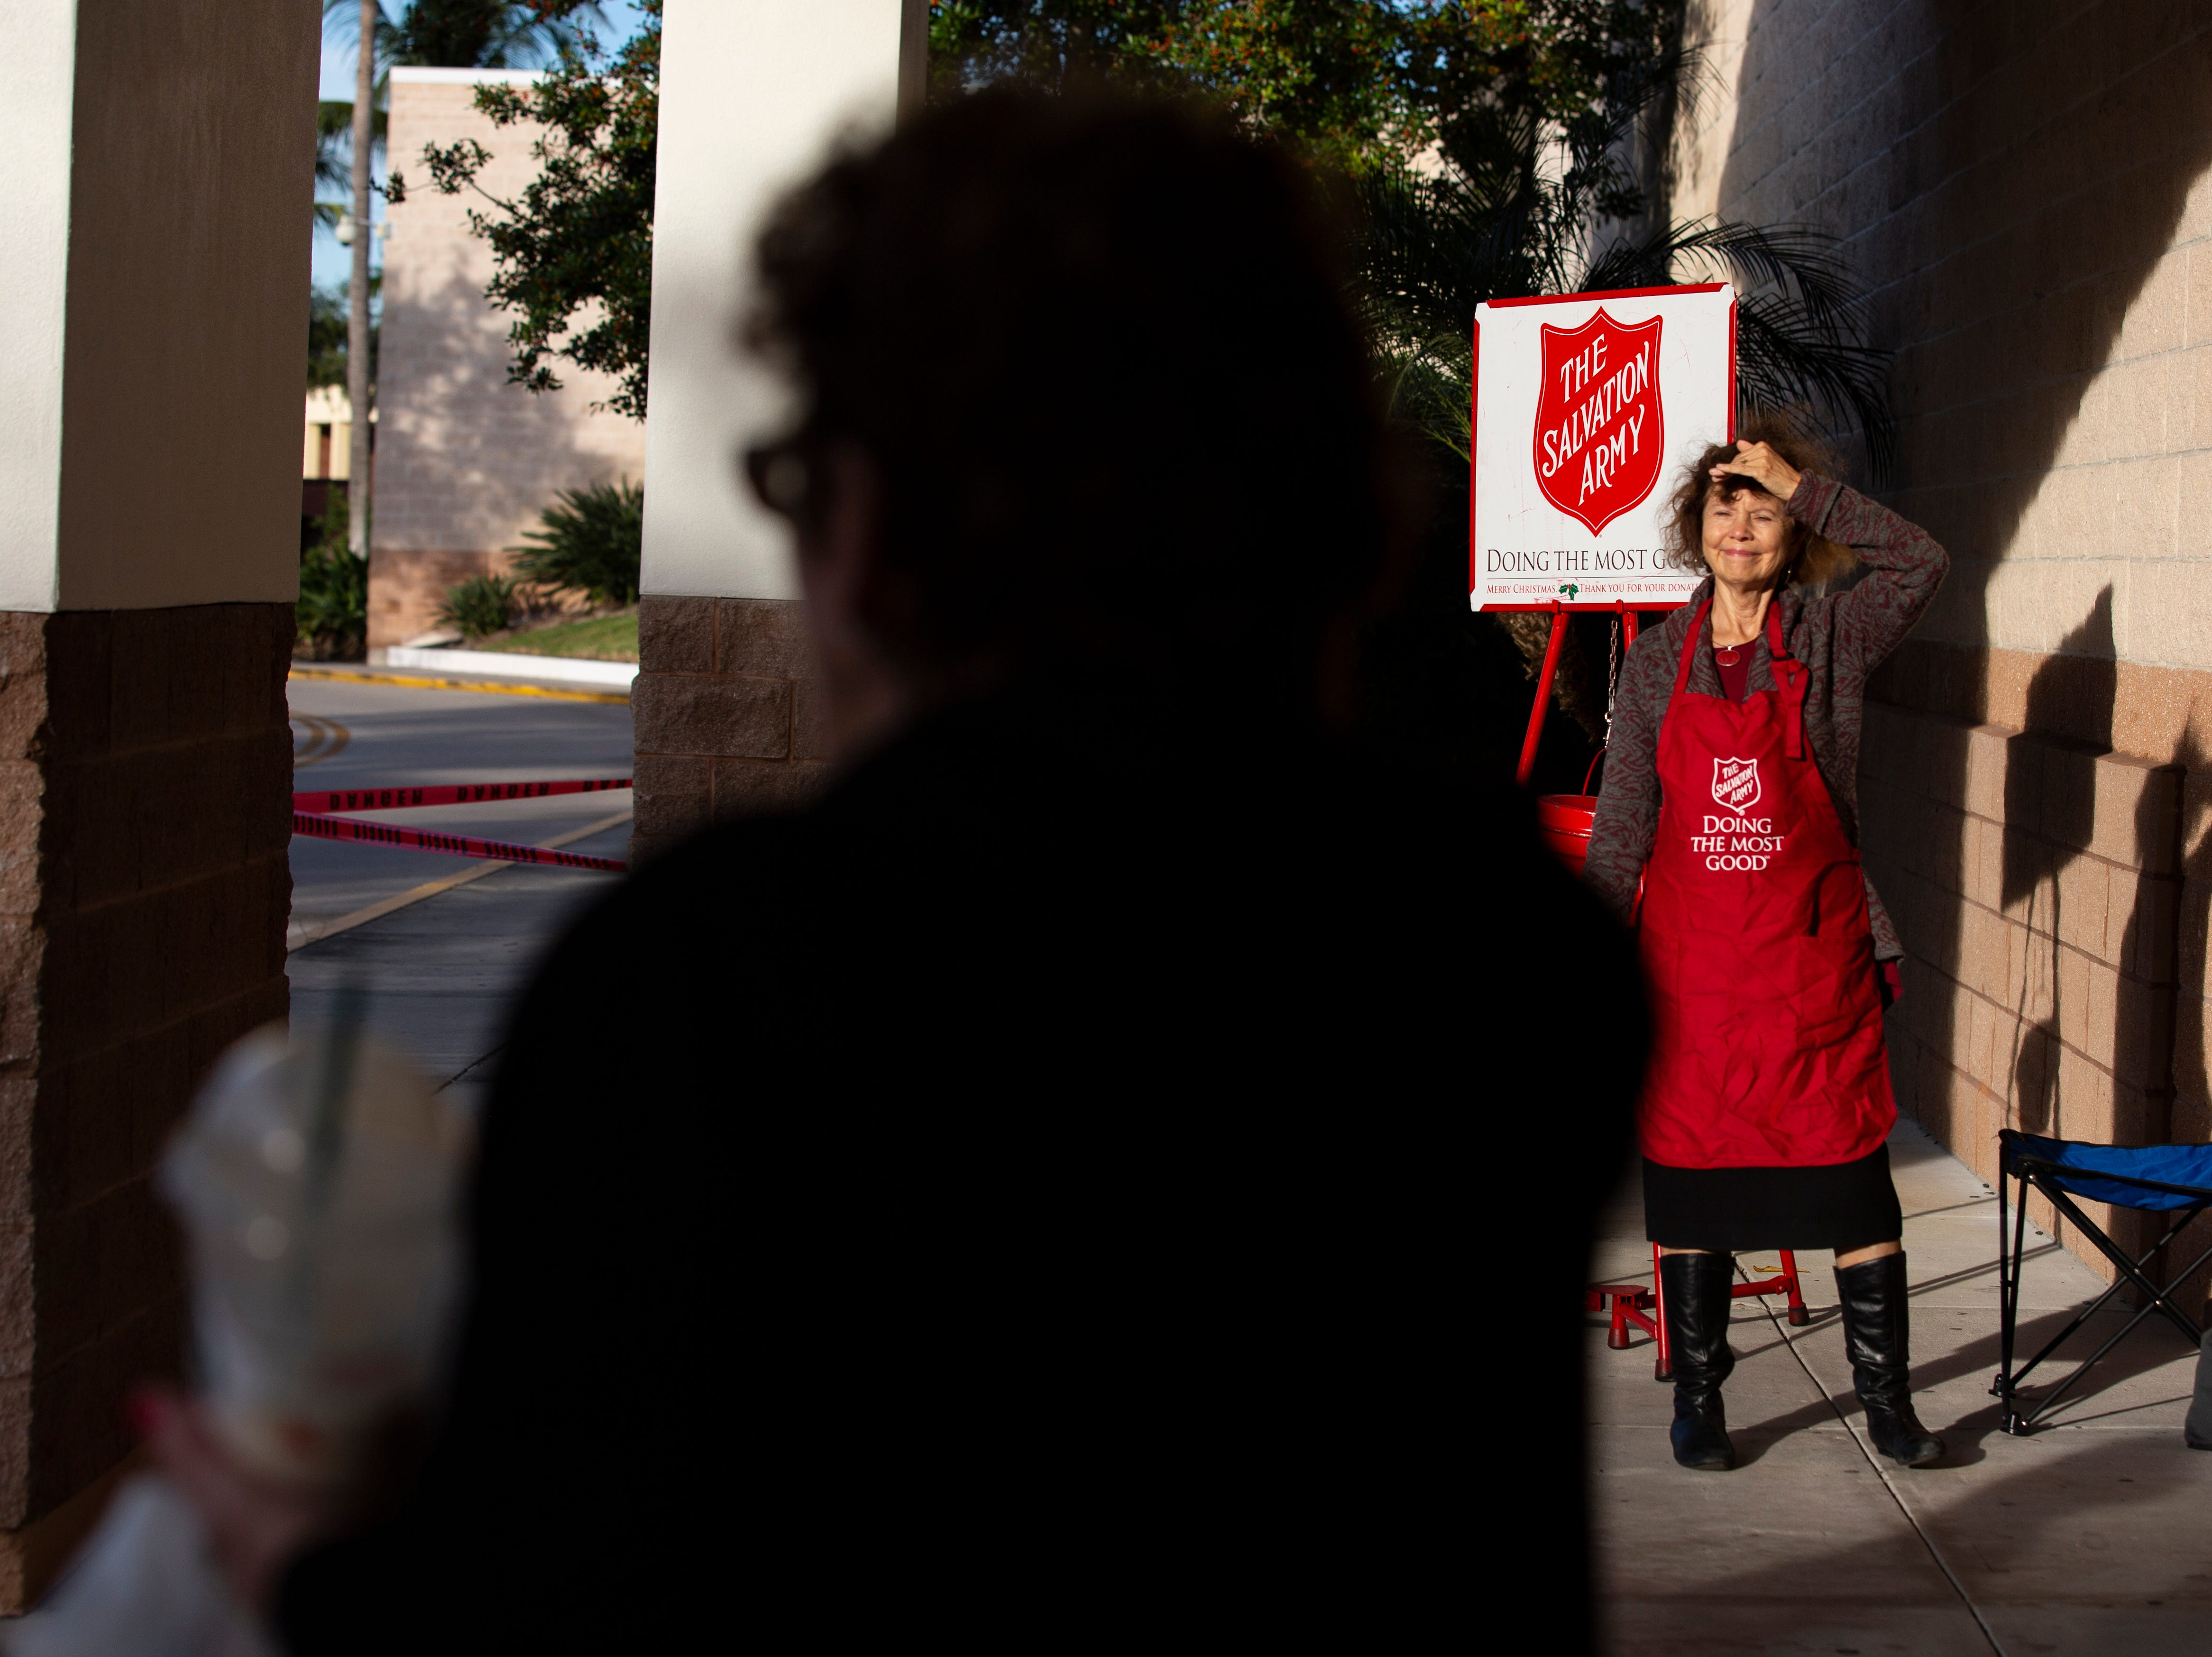 With a smile on her face, Daily News reporter Harriet Heithaus rings the bell for a passerby, who walks away without looking at her, Nov. 28 at Coastland Center mall.